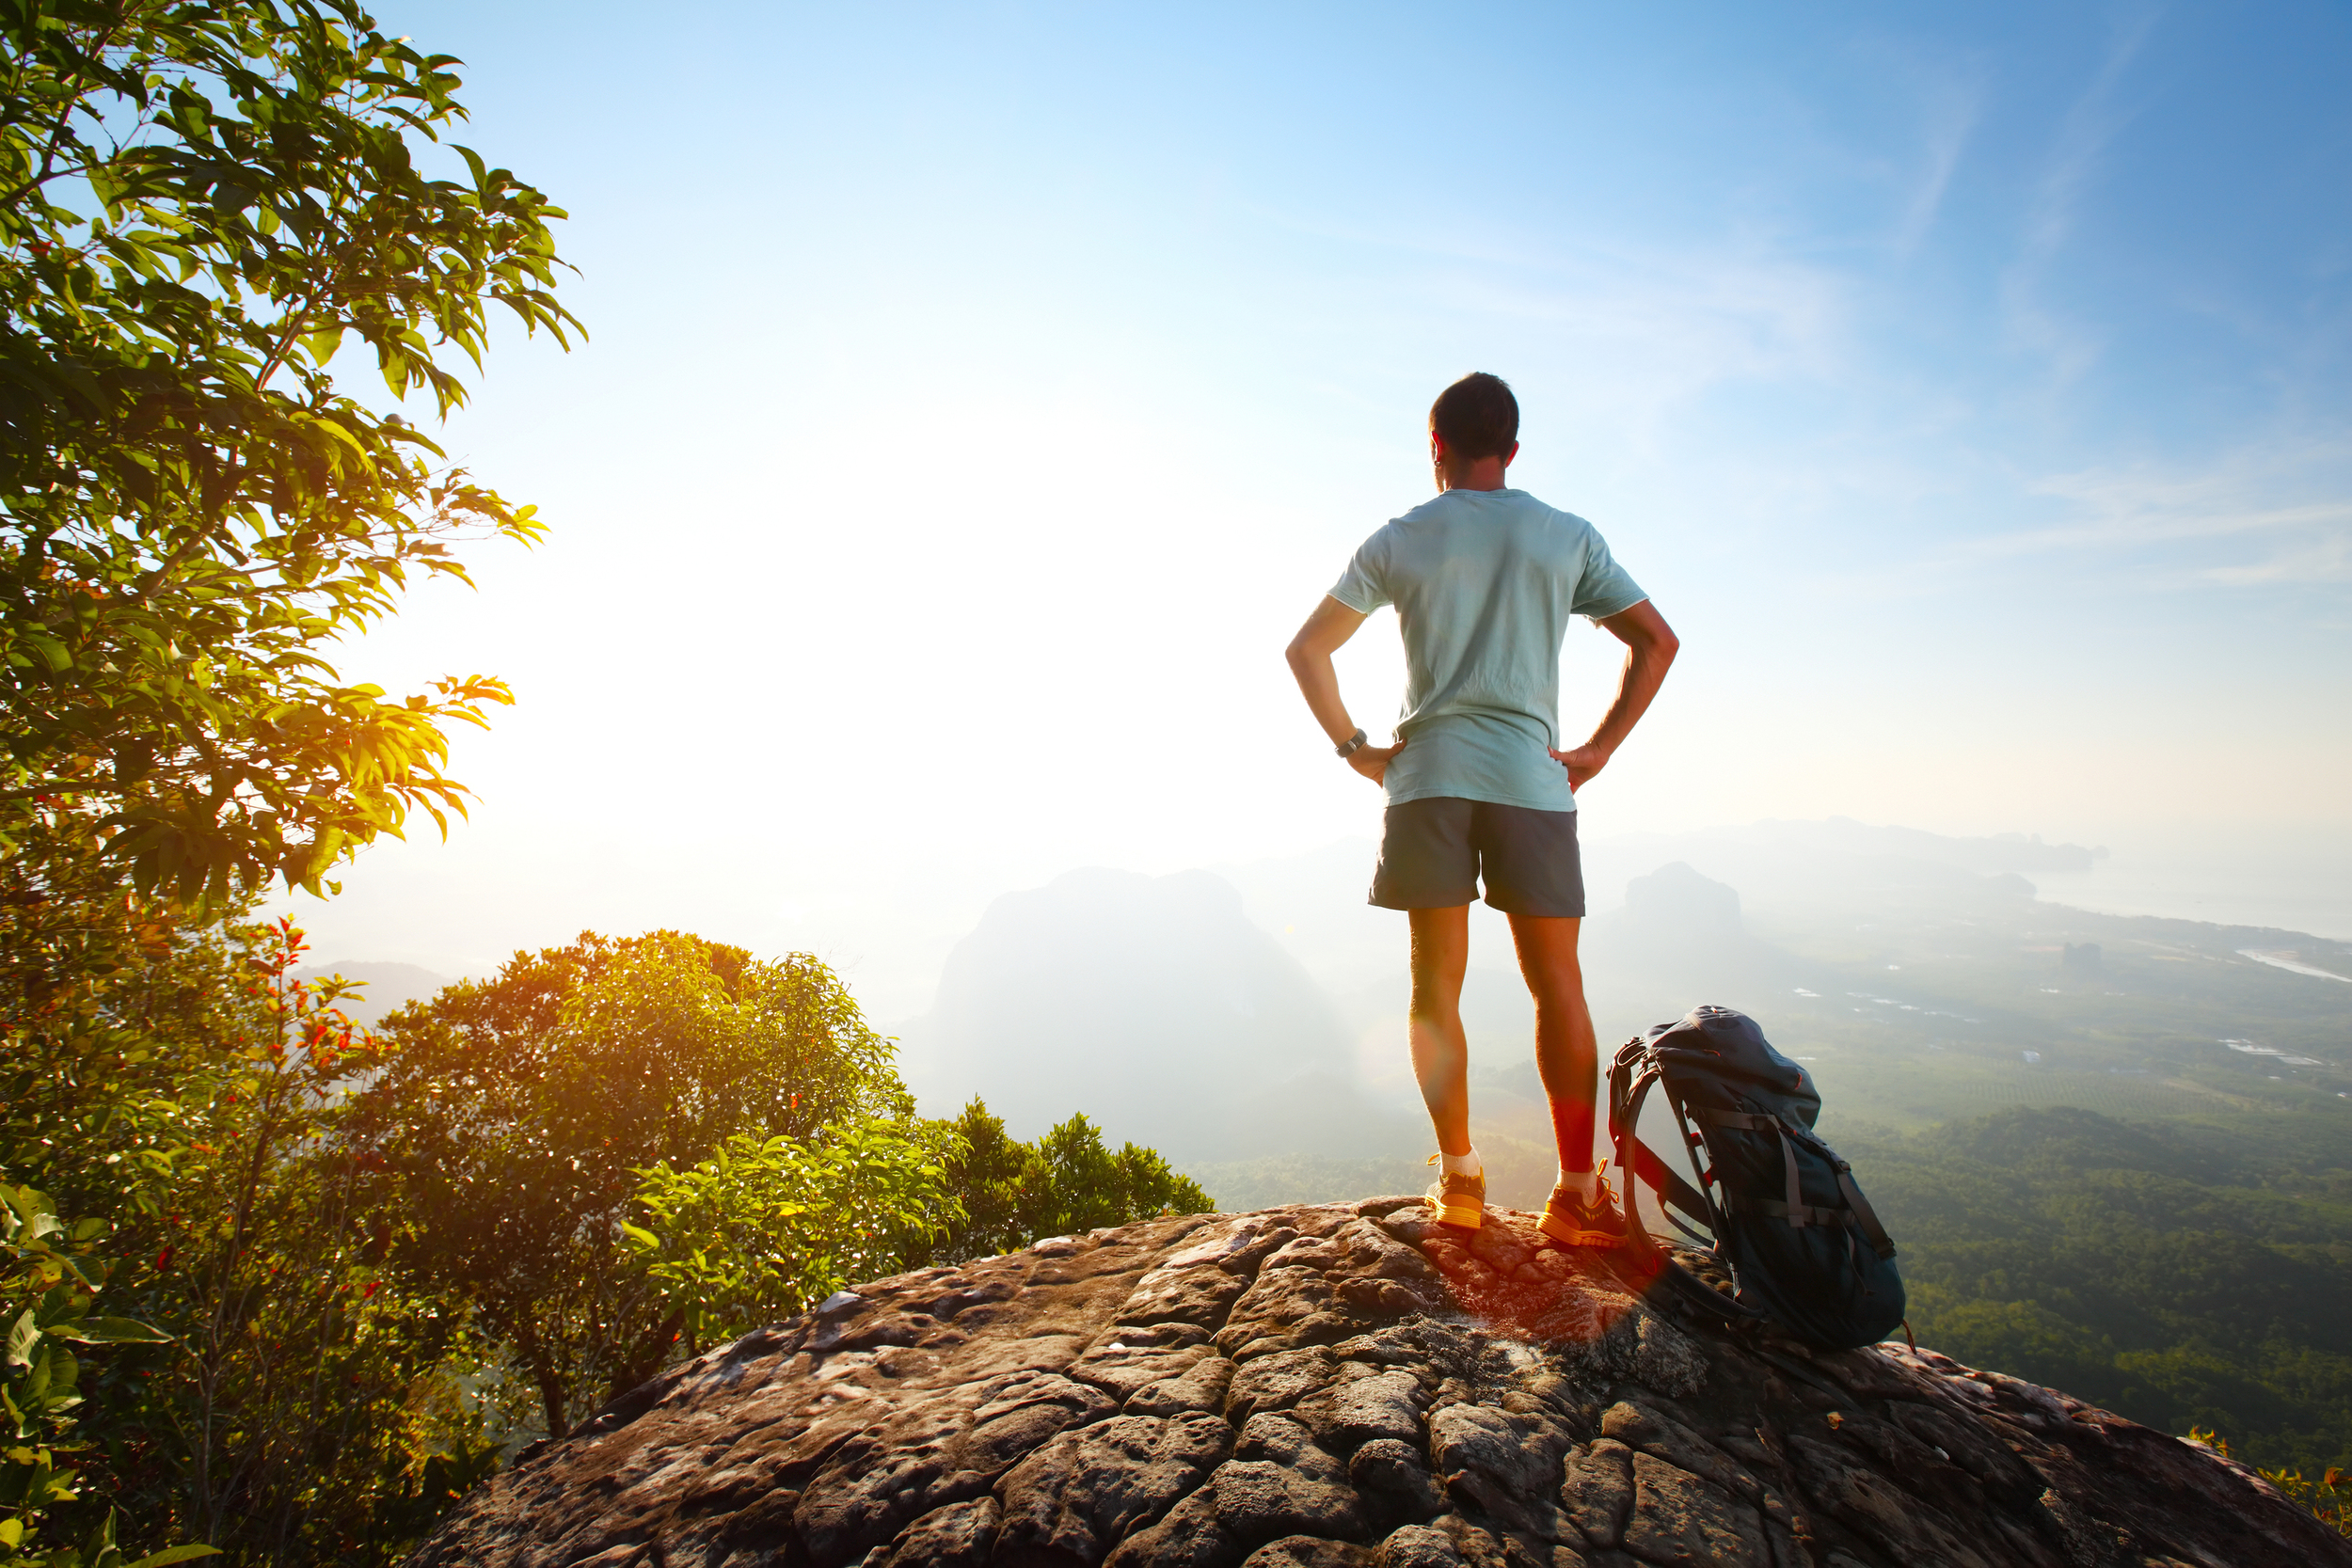 bigstock-Young-hiker-relaxing-on-top-of-43890697.jpg